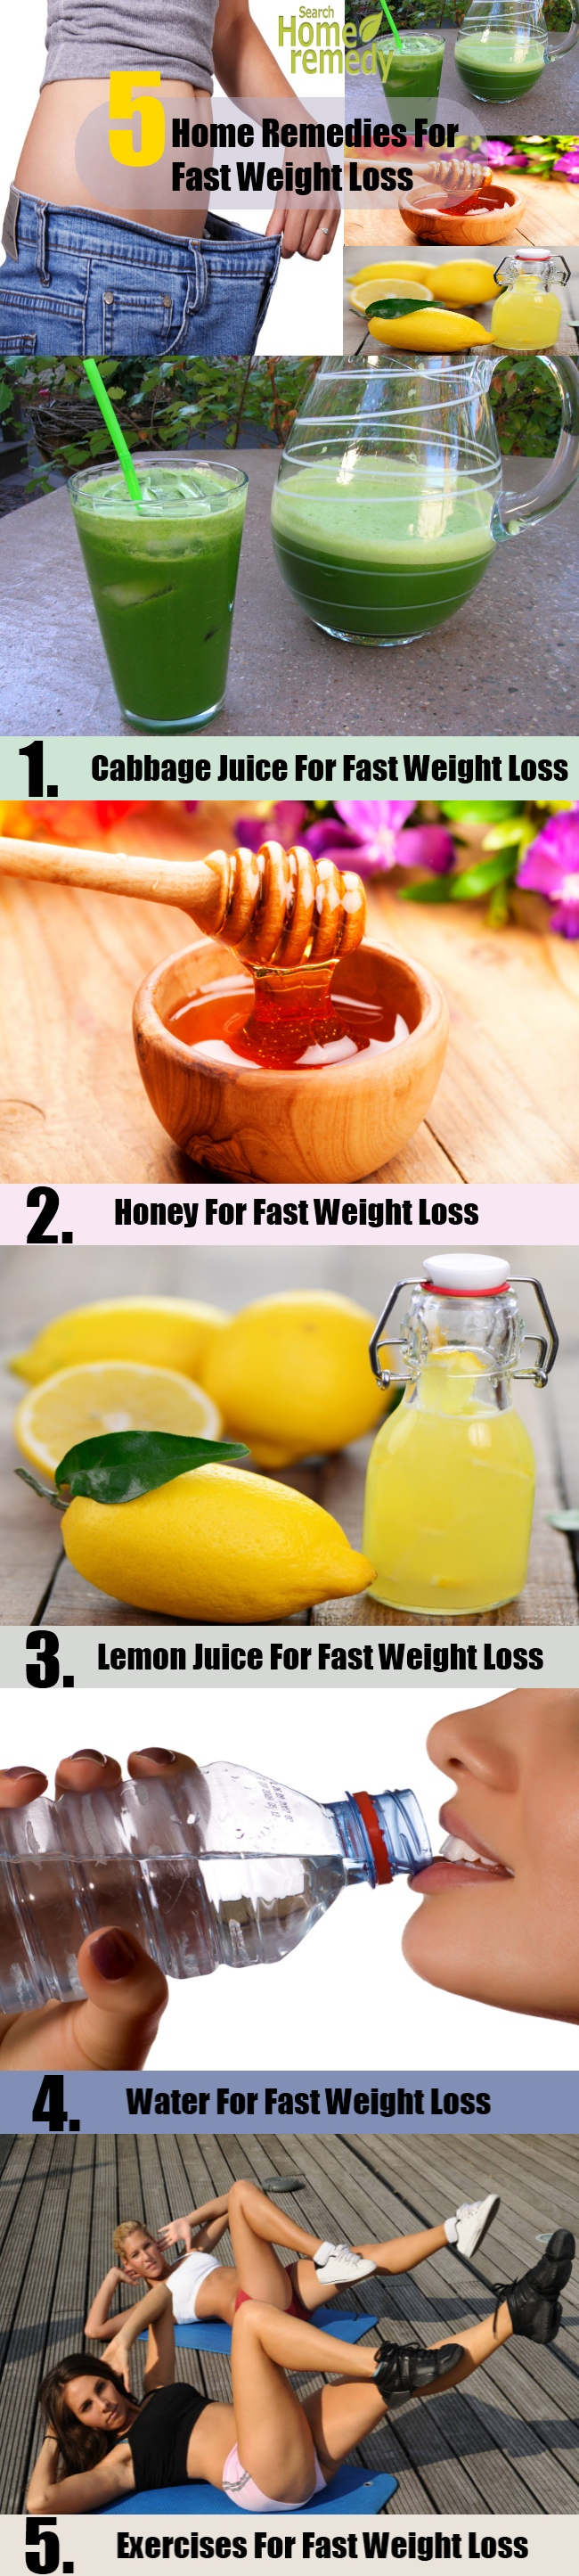 5 Home Remedies For Fast Weight Loss